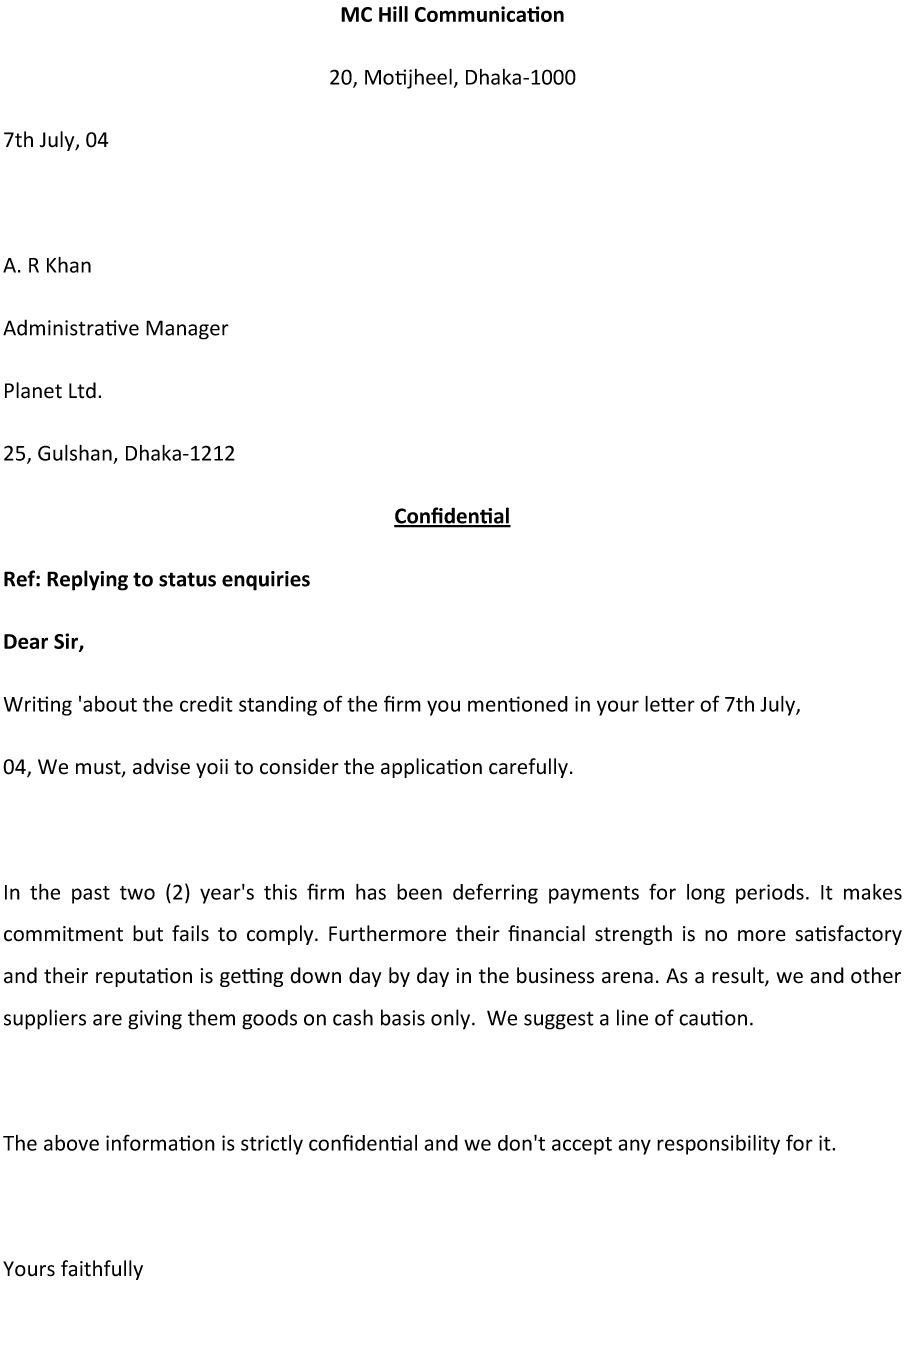 Inquiry Letter For Business Status Inquiry Letter Sample For Effective Communication